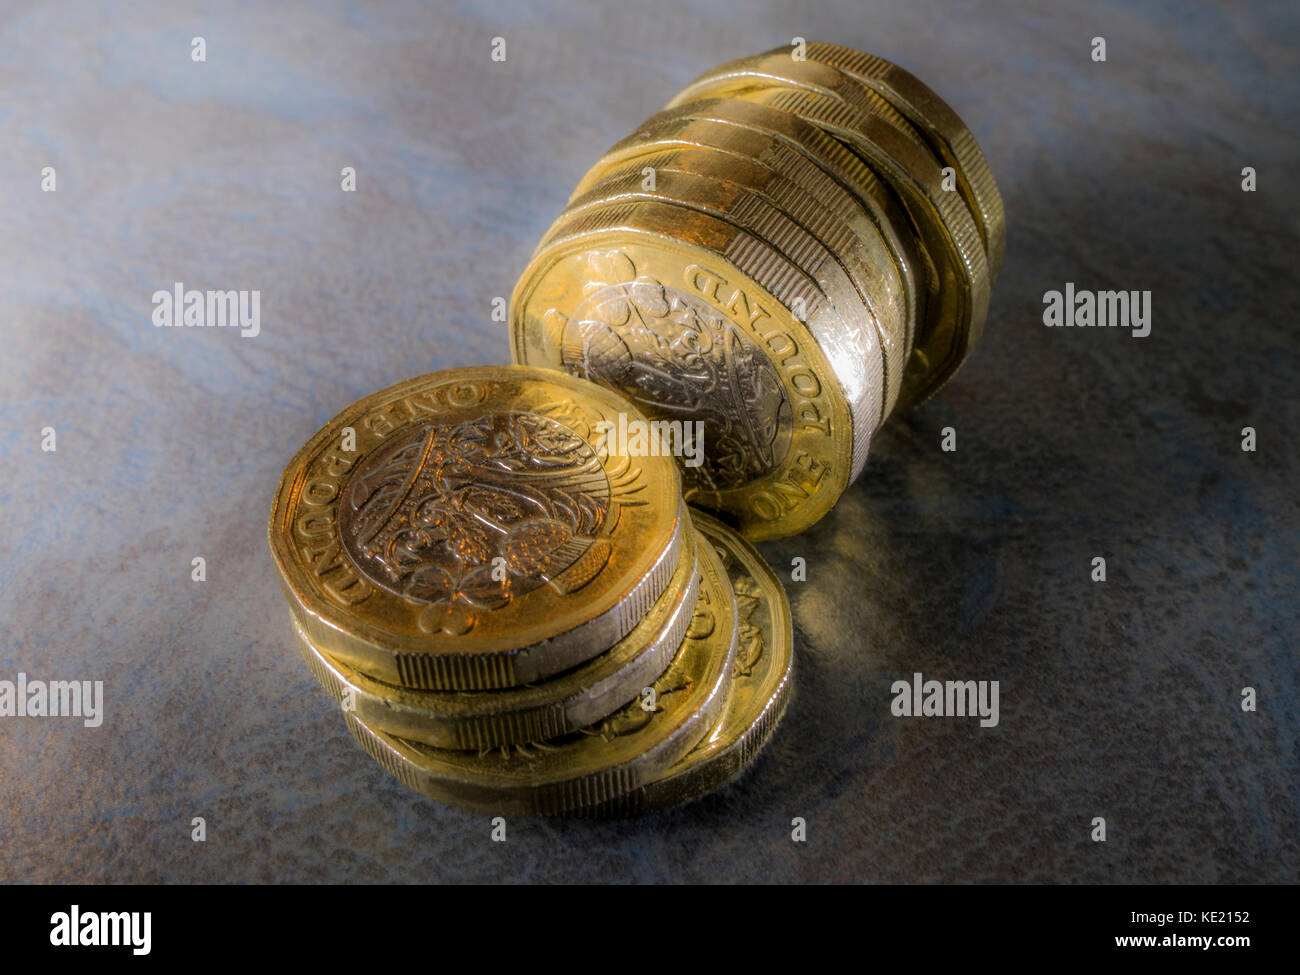 New 12 sided sterling pound coins against a subtle background. Can be used to illustrate any aspect of new pounds - Stock Image